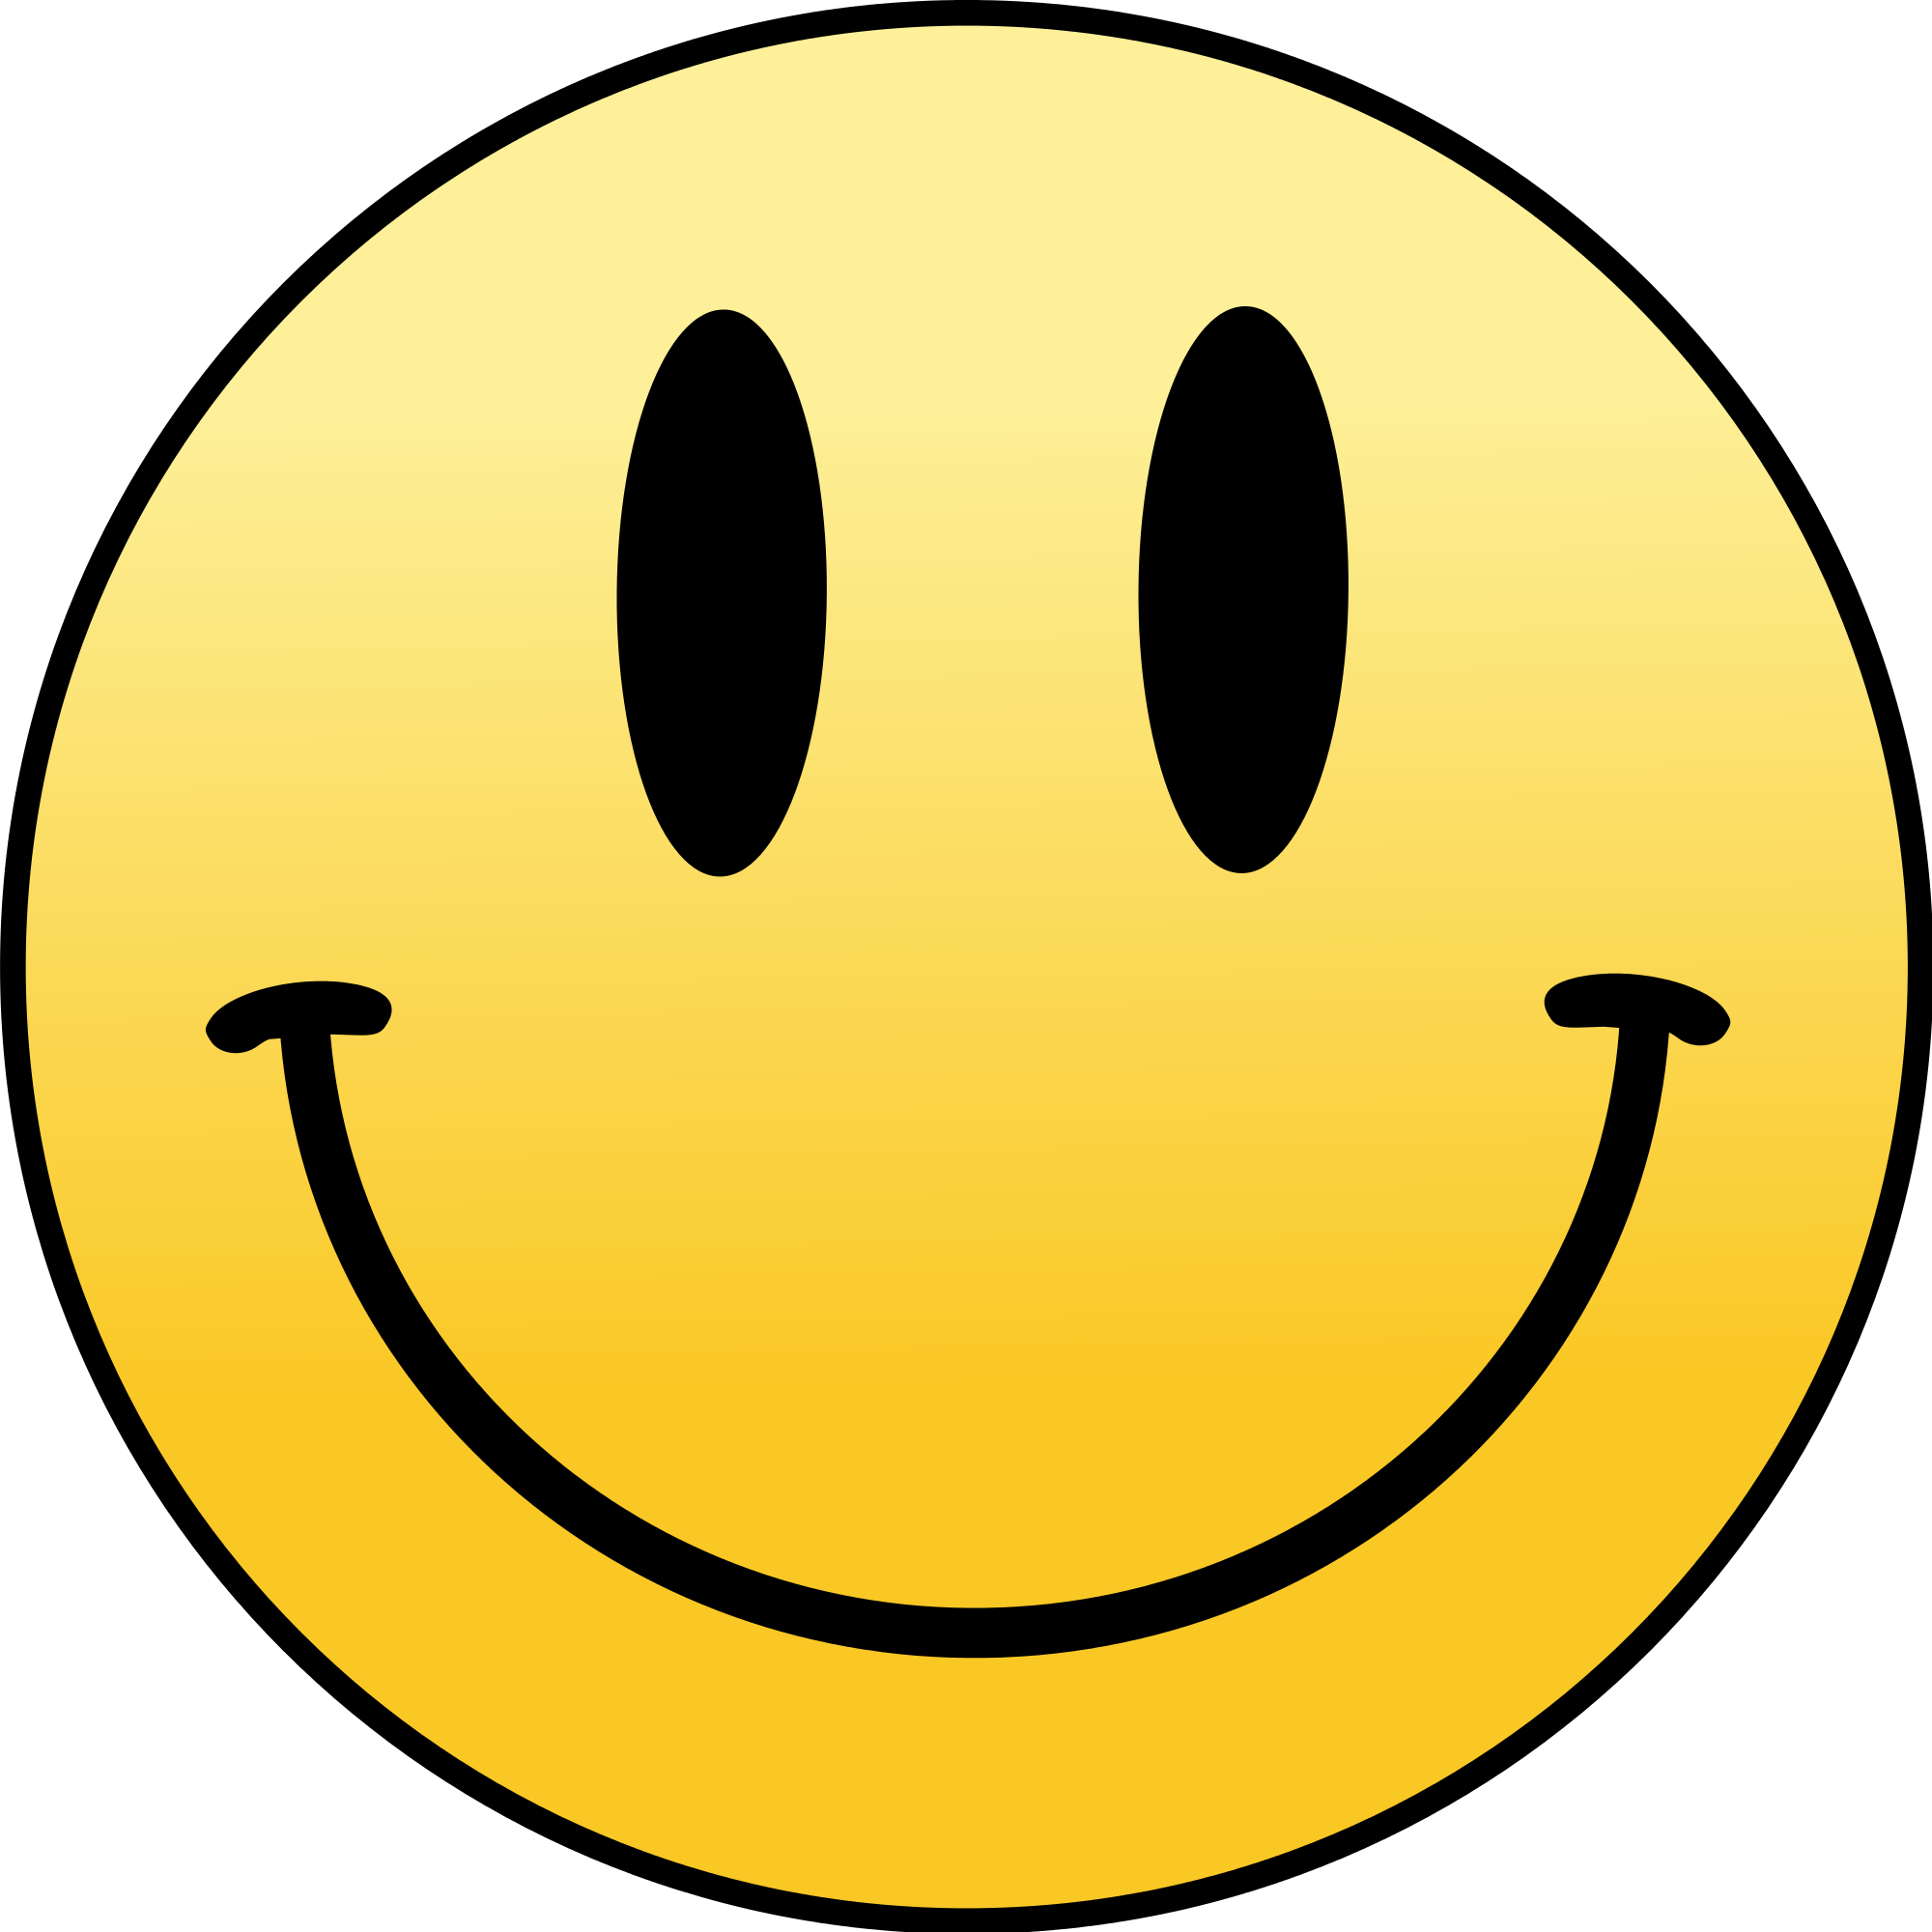 Smile PNG Transparent Images.